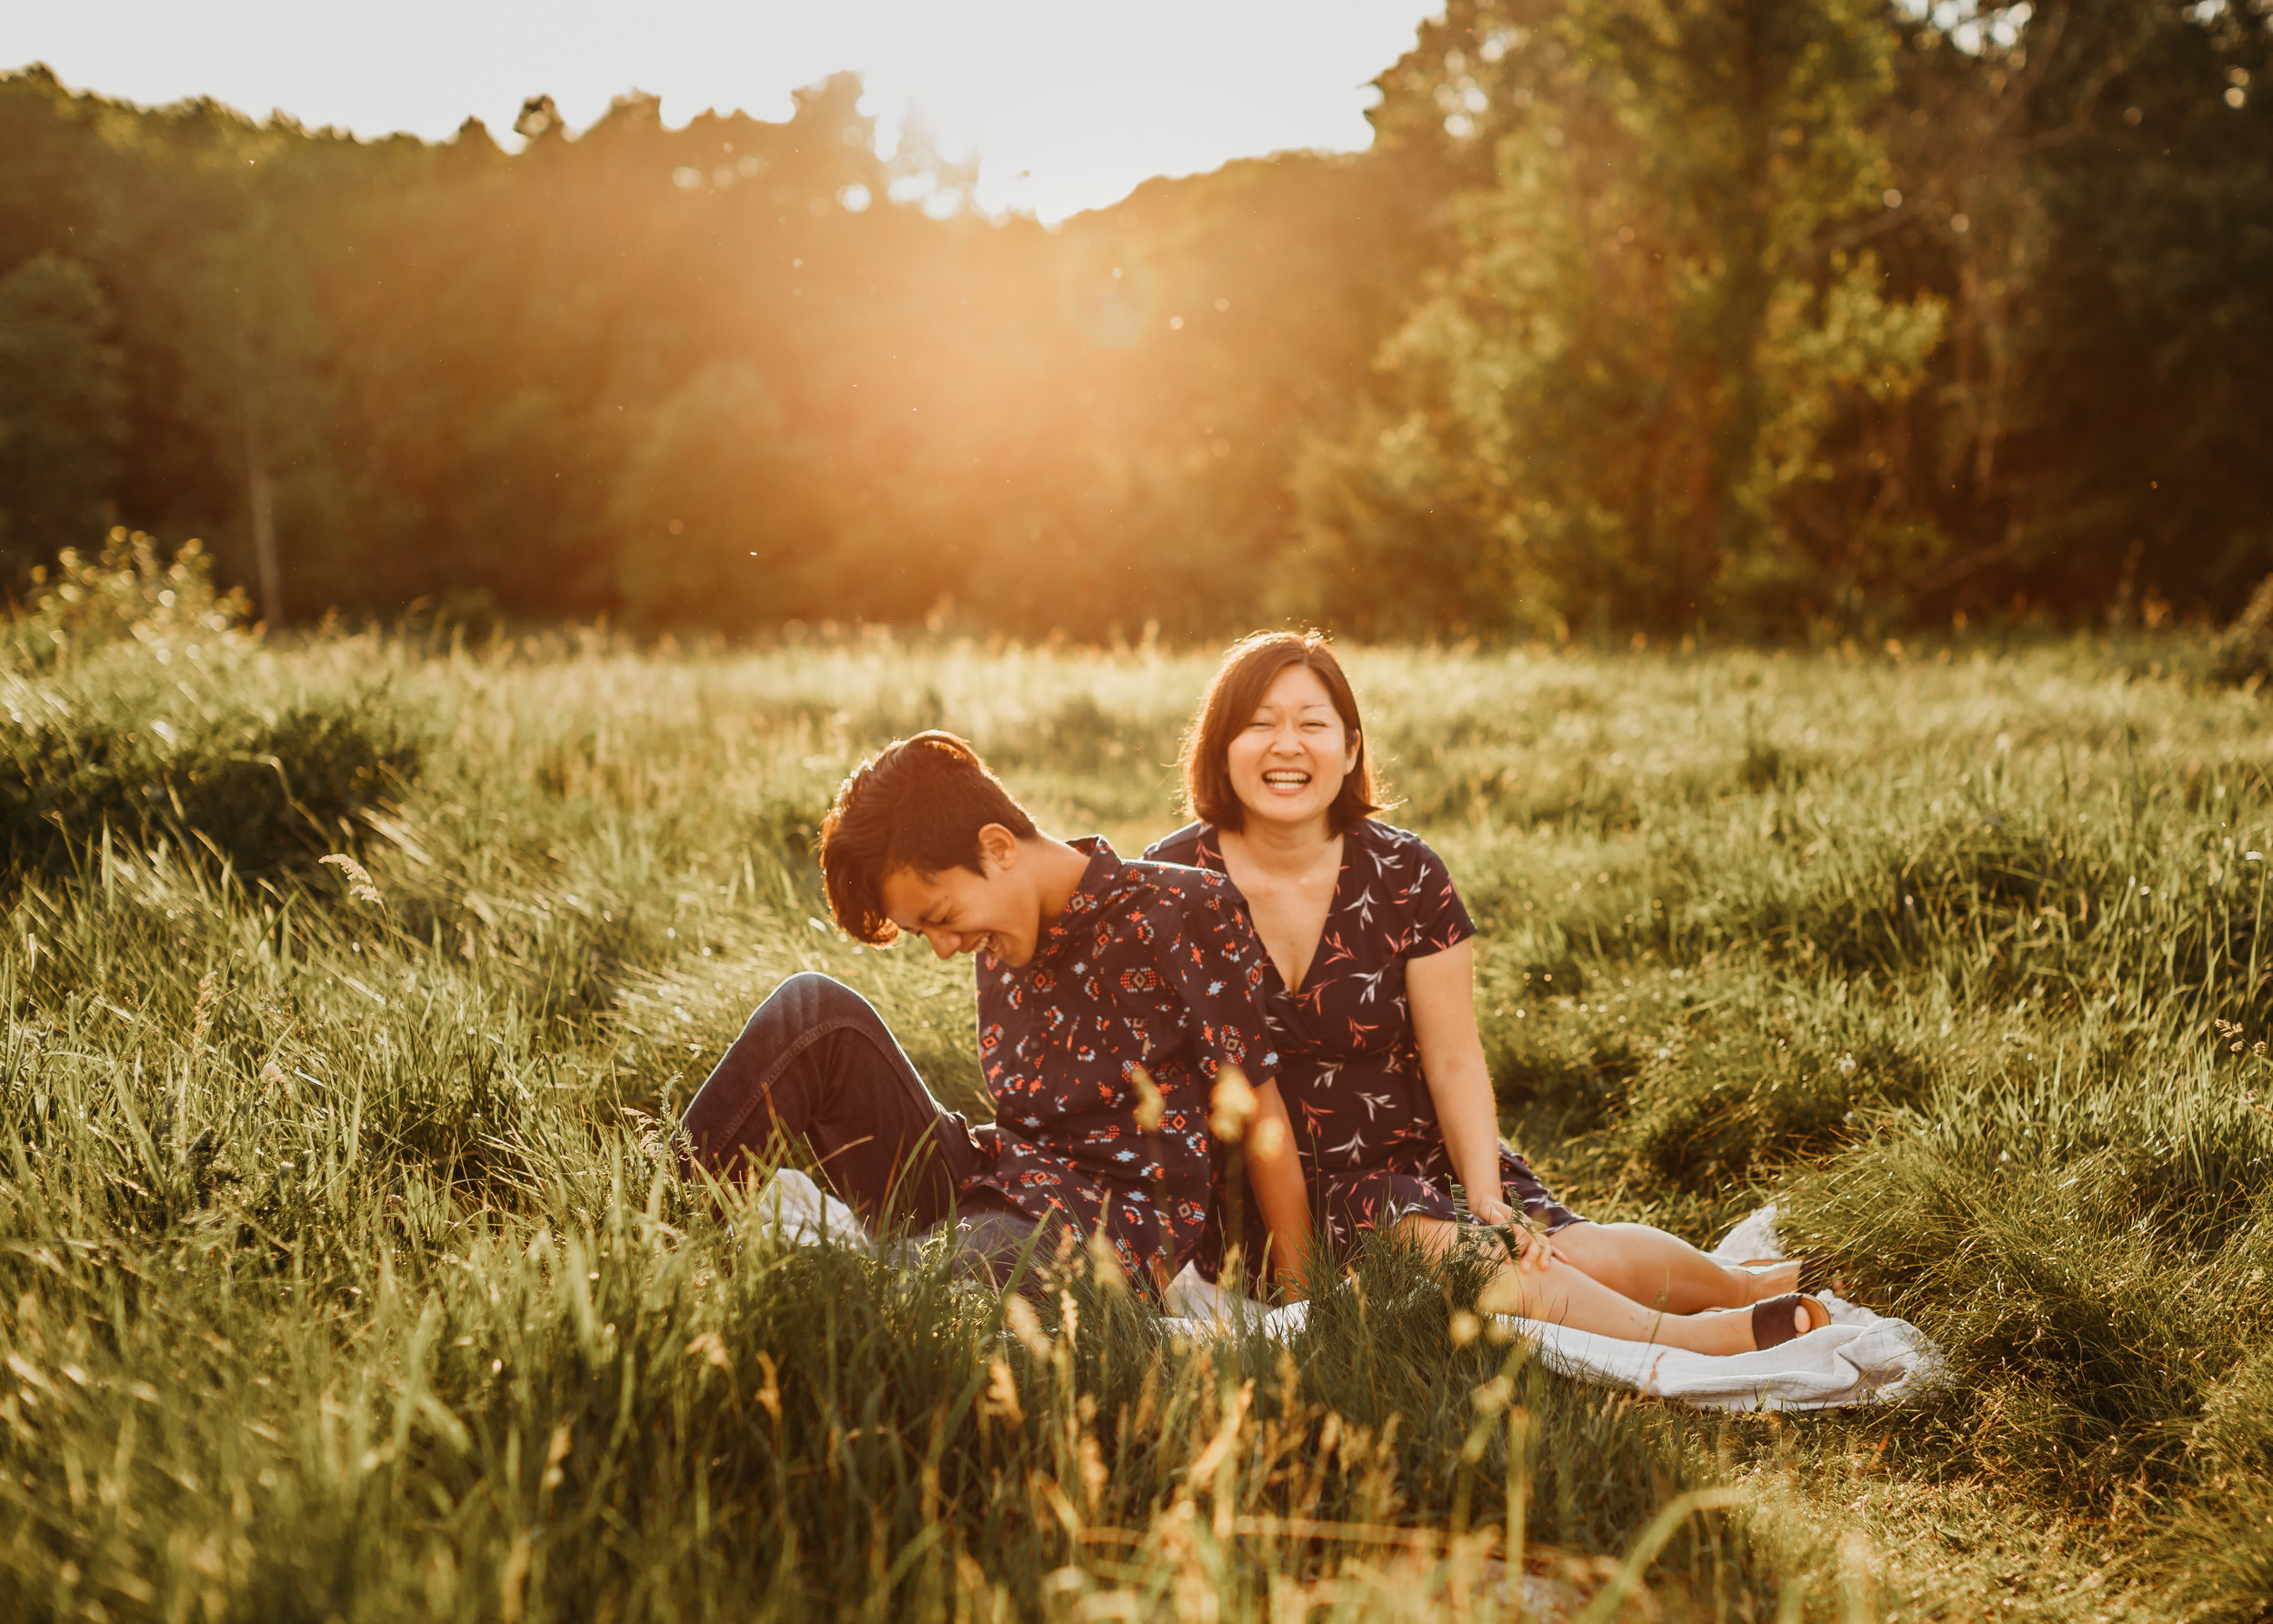 Laughter, movement, and prompts help to take the tension out of family portraits with teens and tweens. Family photos with older kids. Boston family photographer Joy LeDuc.